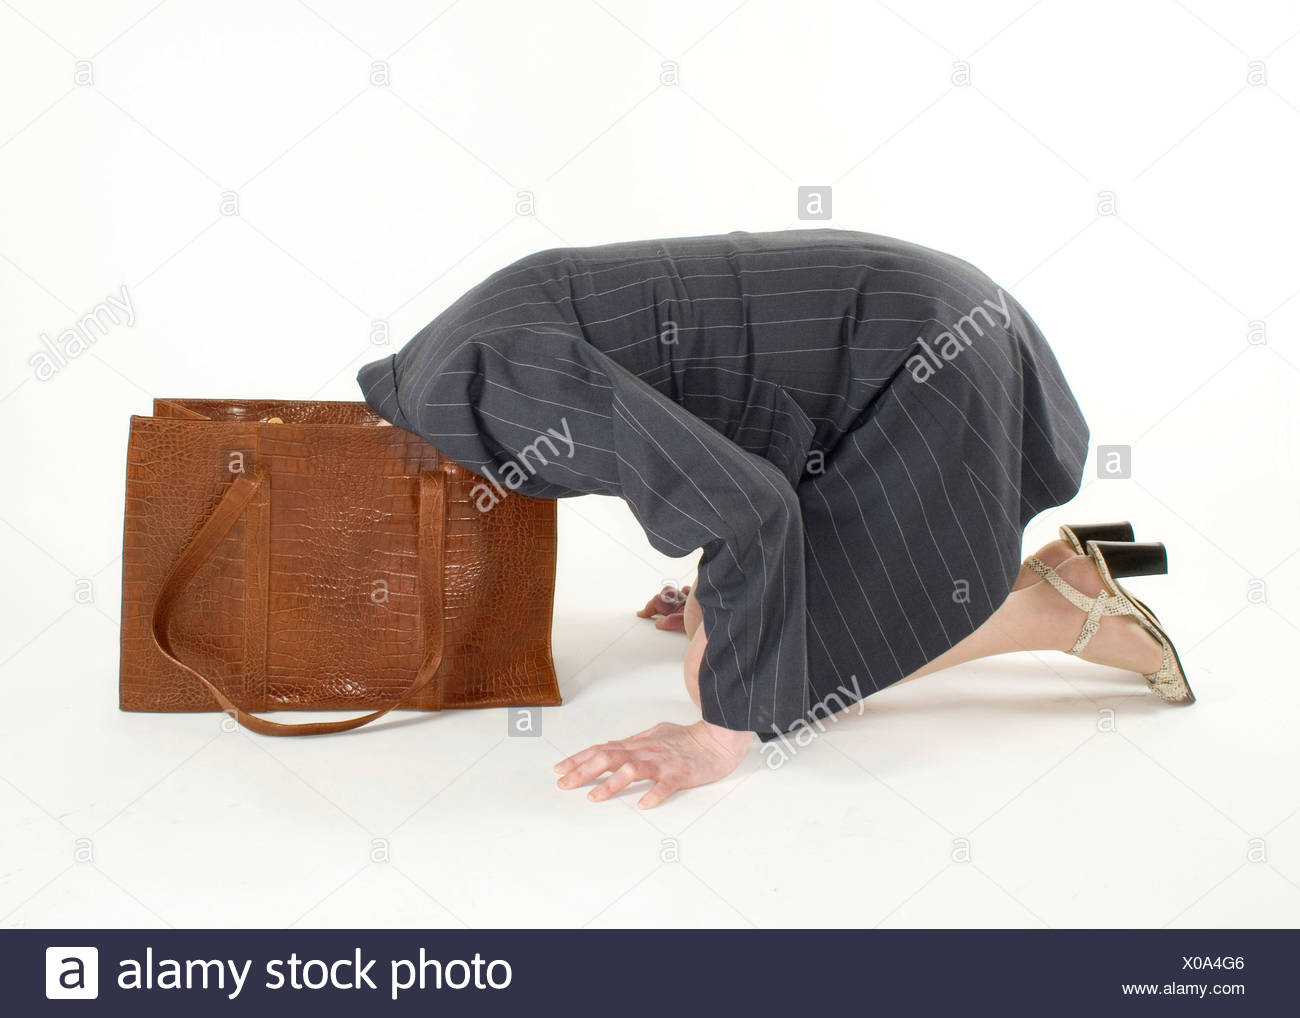 Woman sticking her head in her handbag - Stock Image